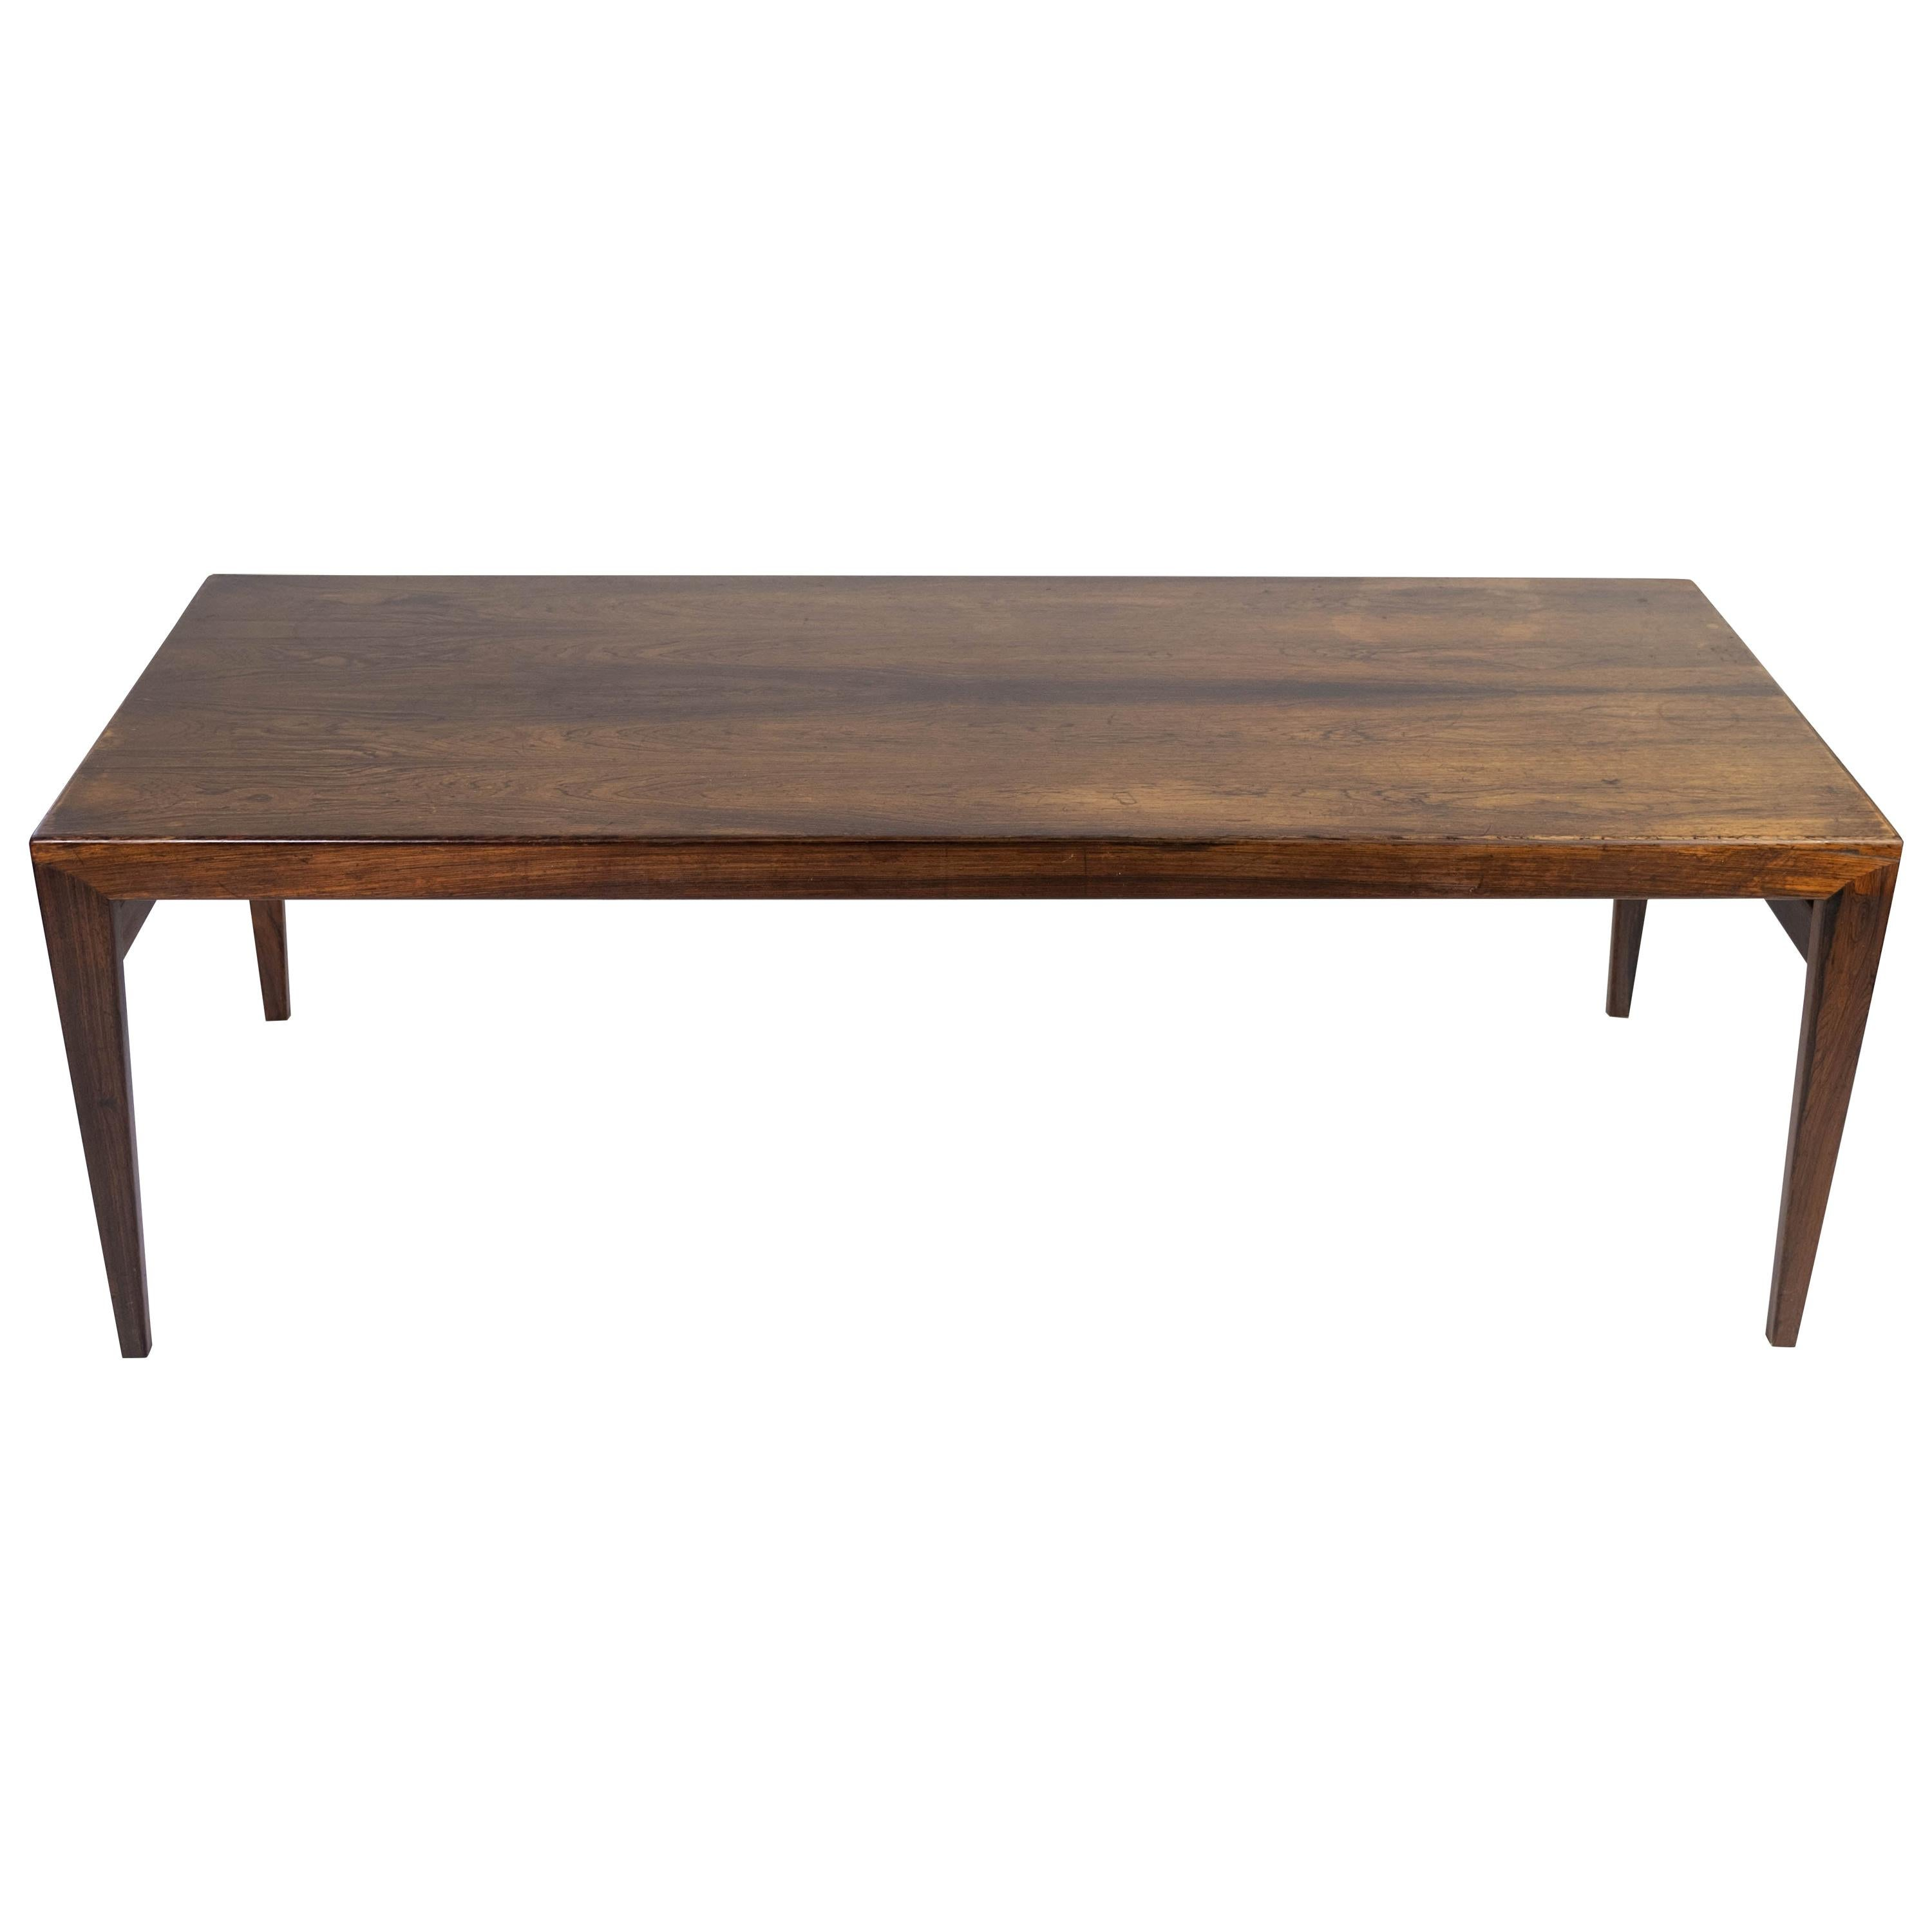 Coffee Table in Rosewood of Danish Design from the 1960s